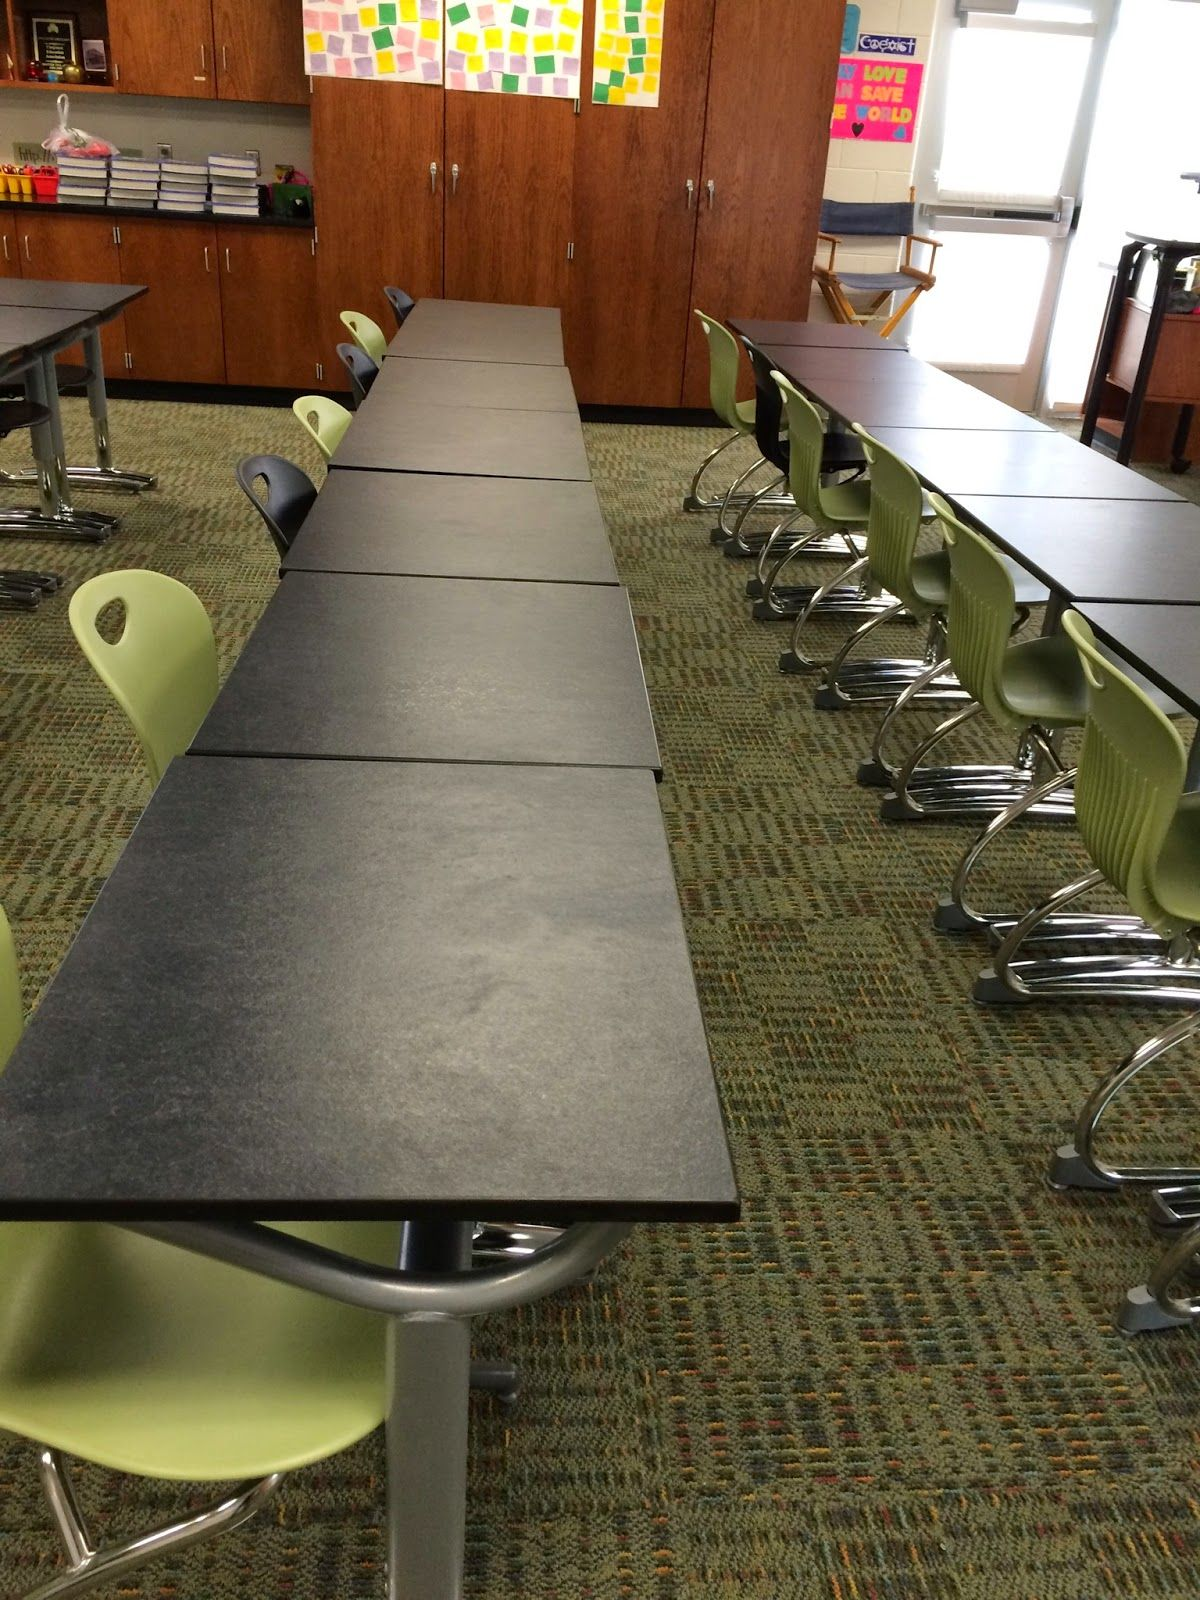 Arranging Desks And Seating Charts At The High School